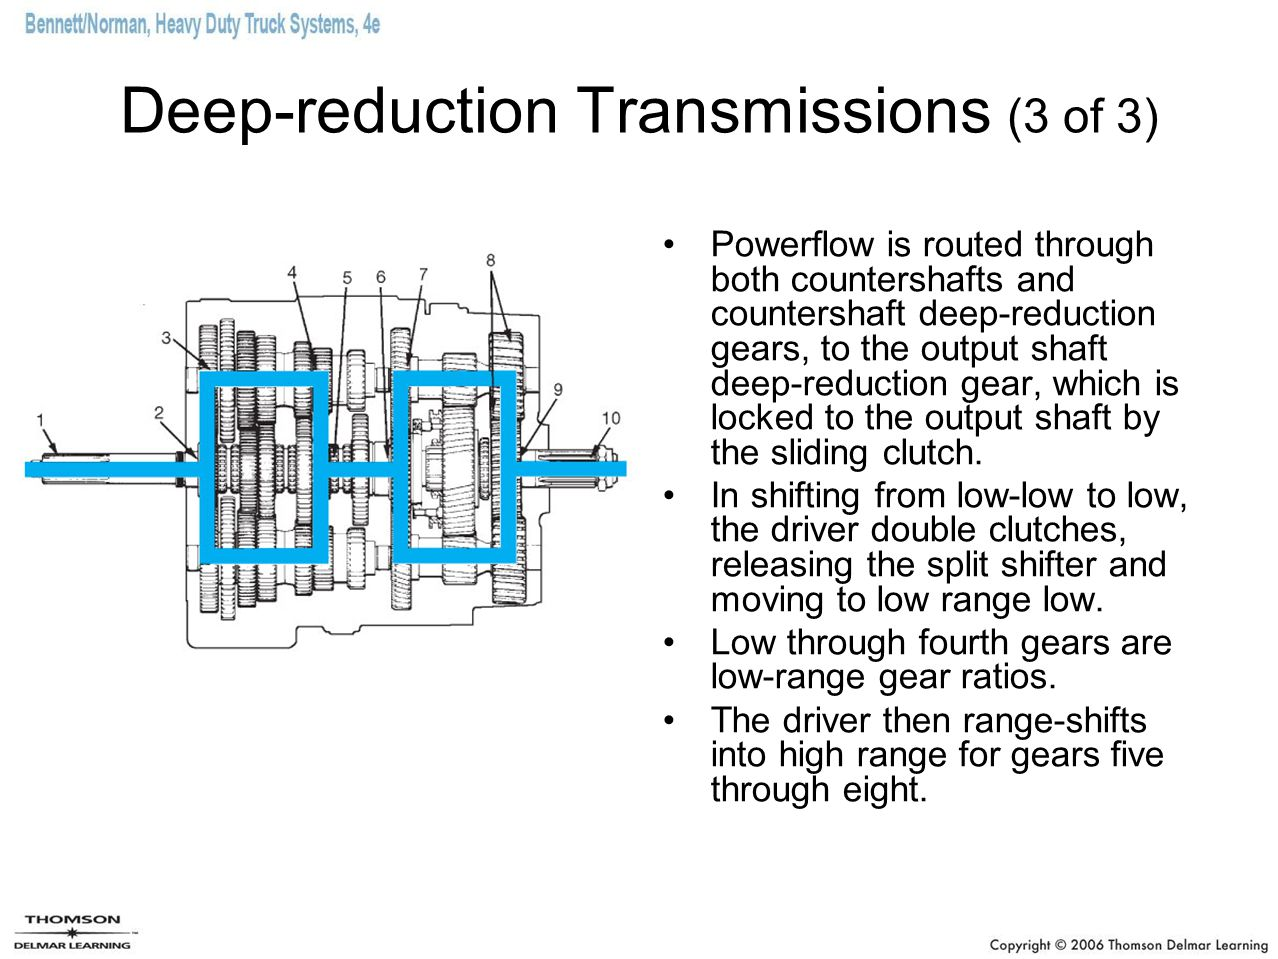 Standard Transmissions Ppt Download Stick Shift Shifting Gears Illustration Diagram Deep Reduction 3 Of